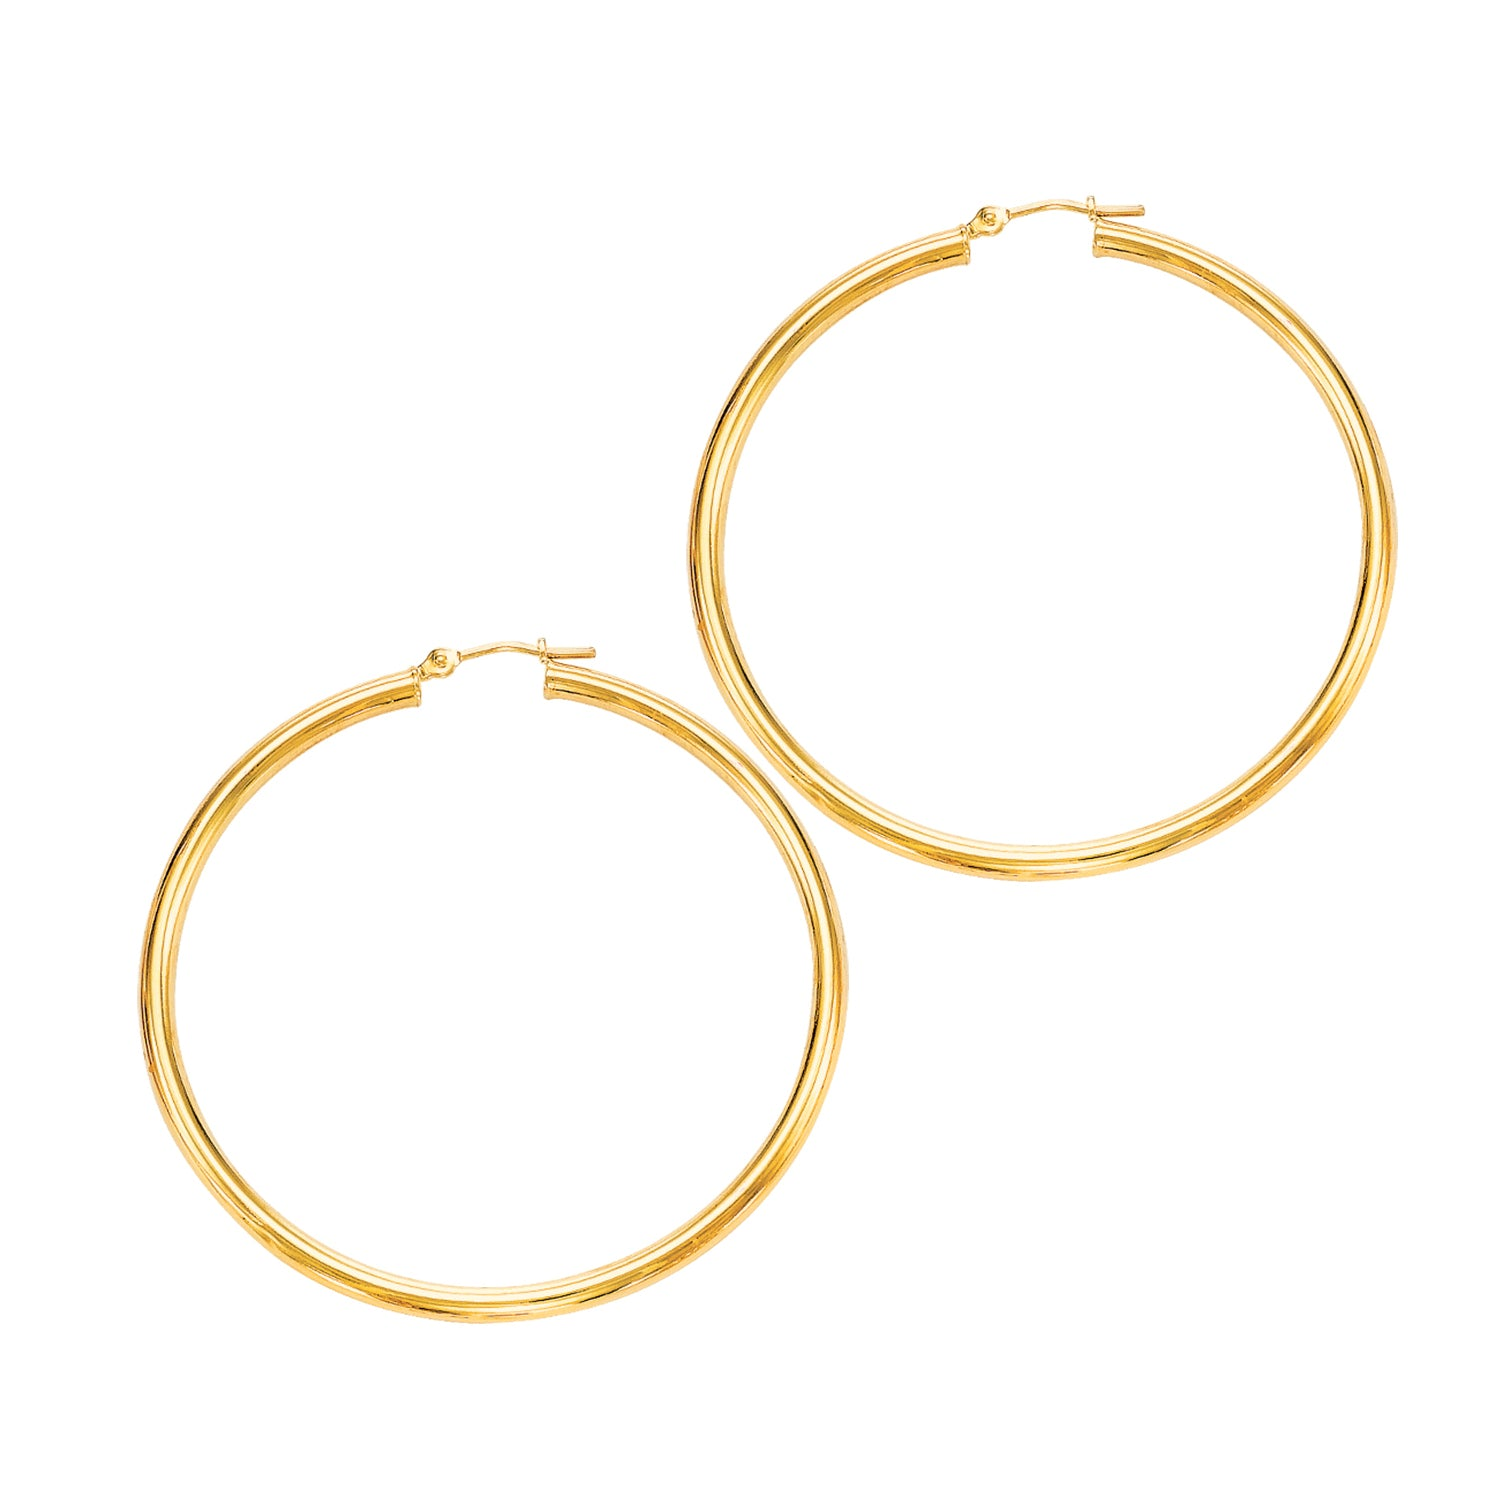 Large Shiny Tube Hoop Earrings, 2 Inches, 14K Yellow Gold